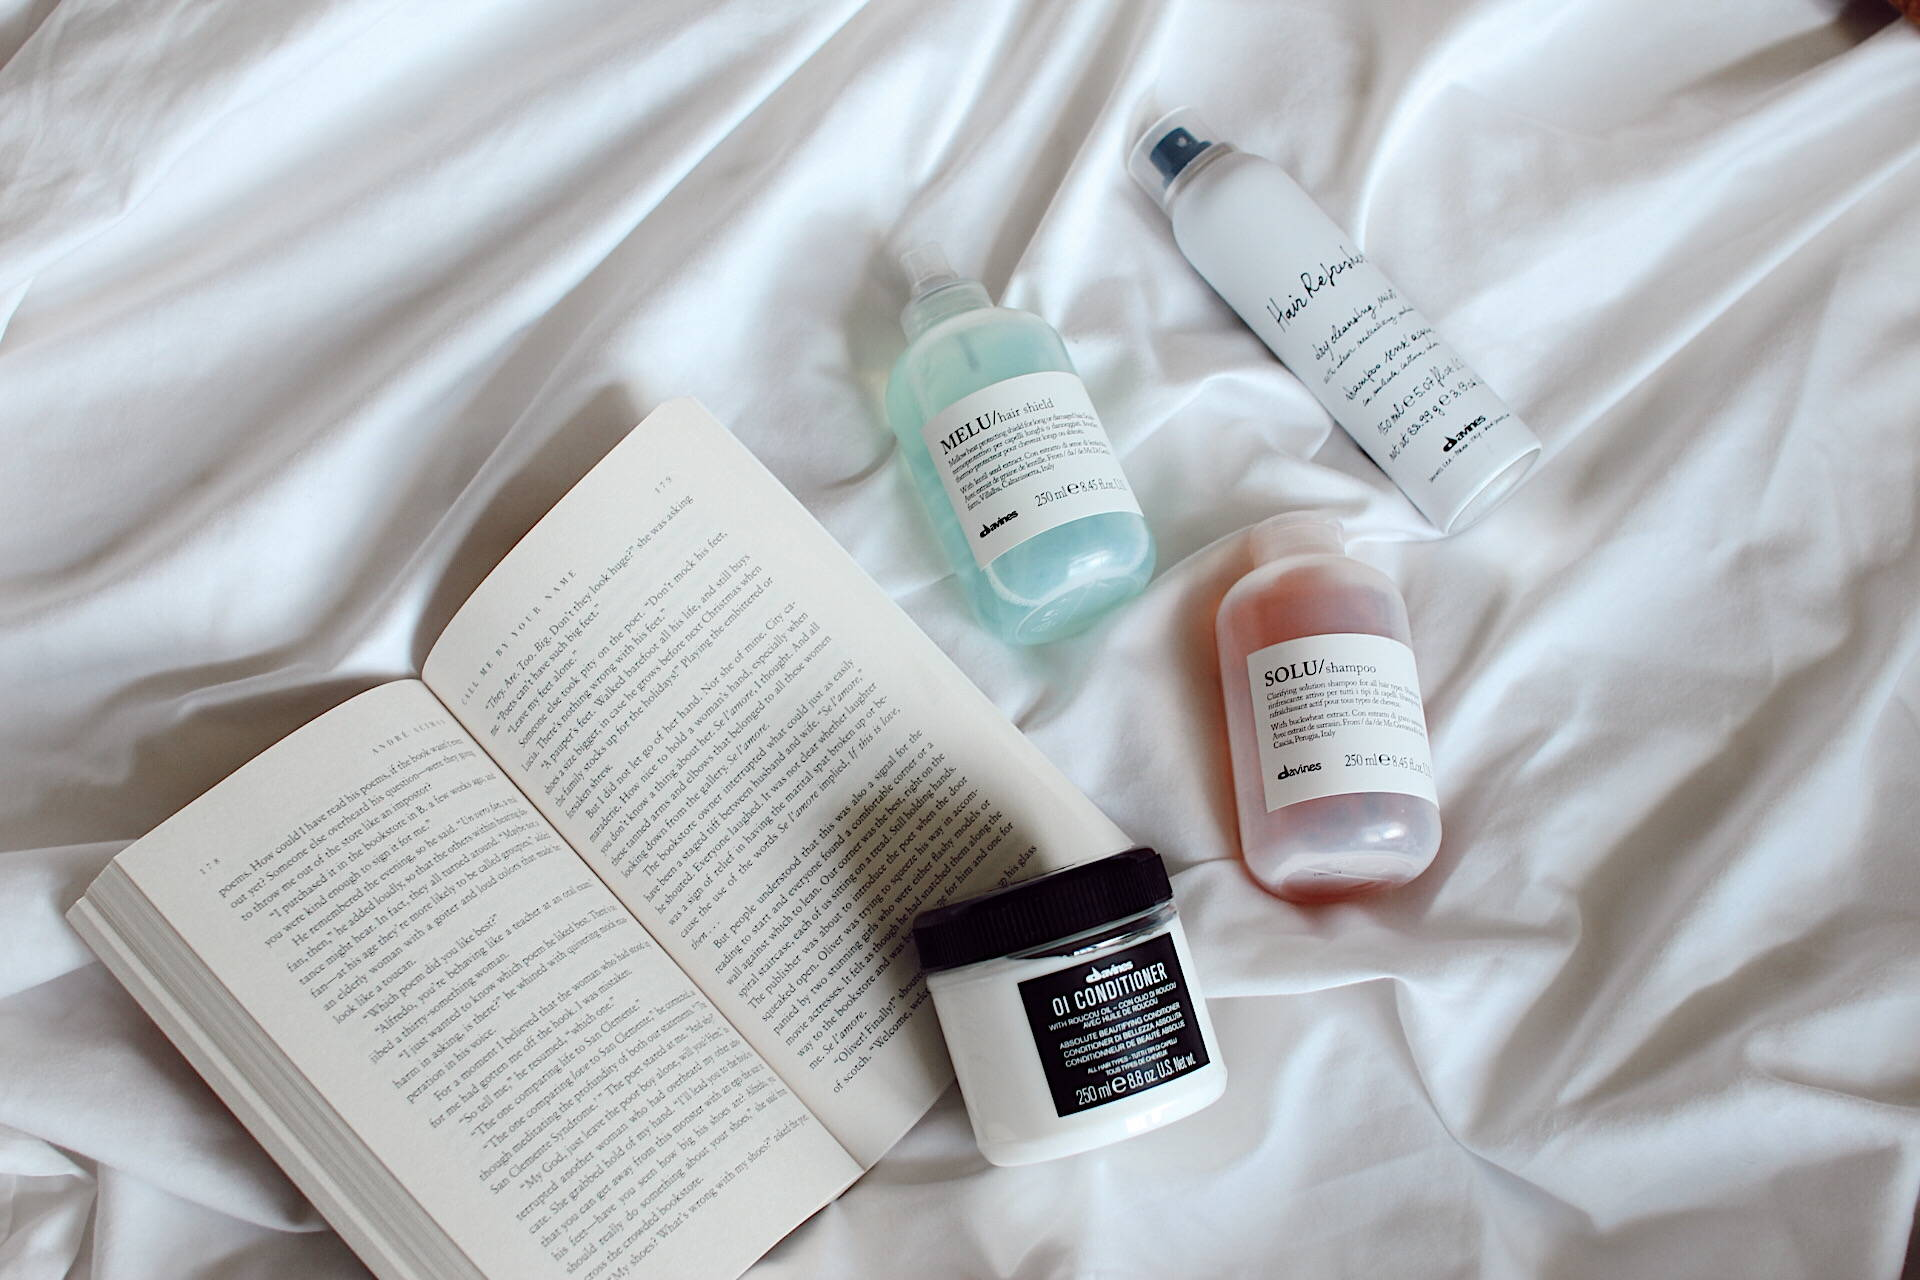 Davines products red white and blue reading